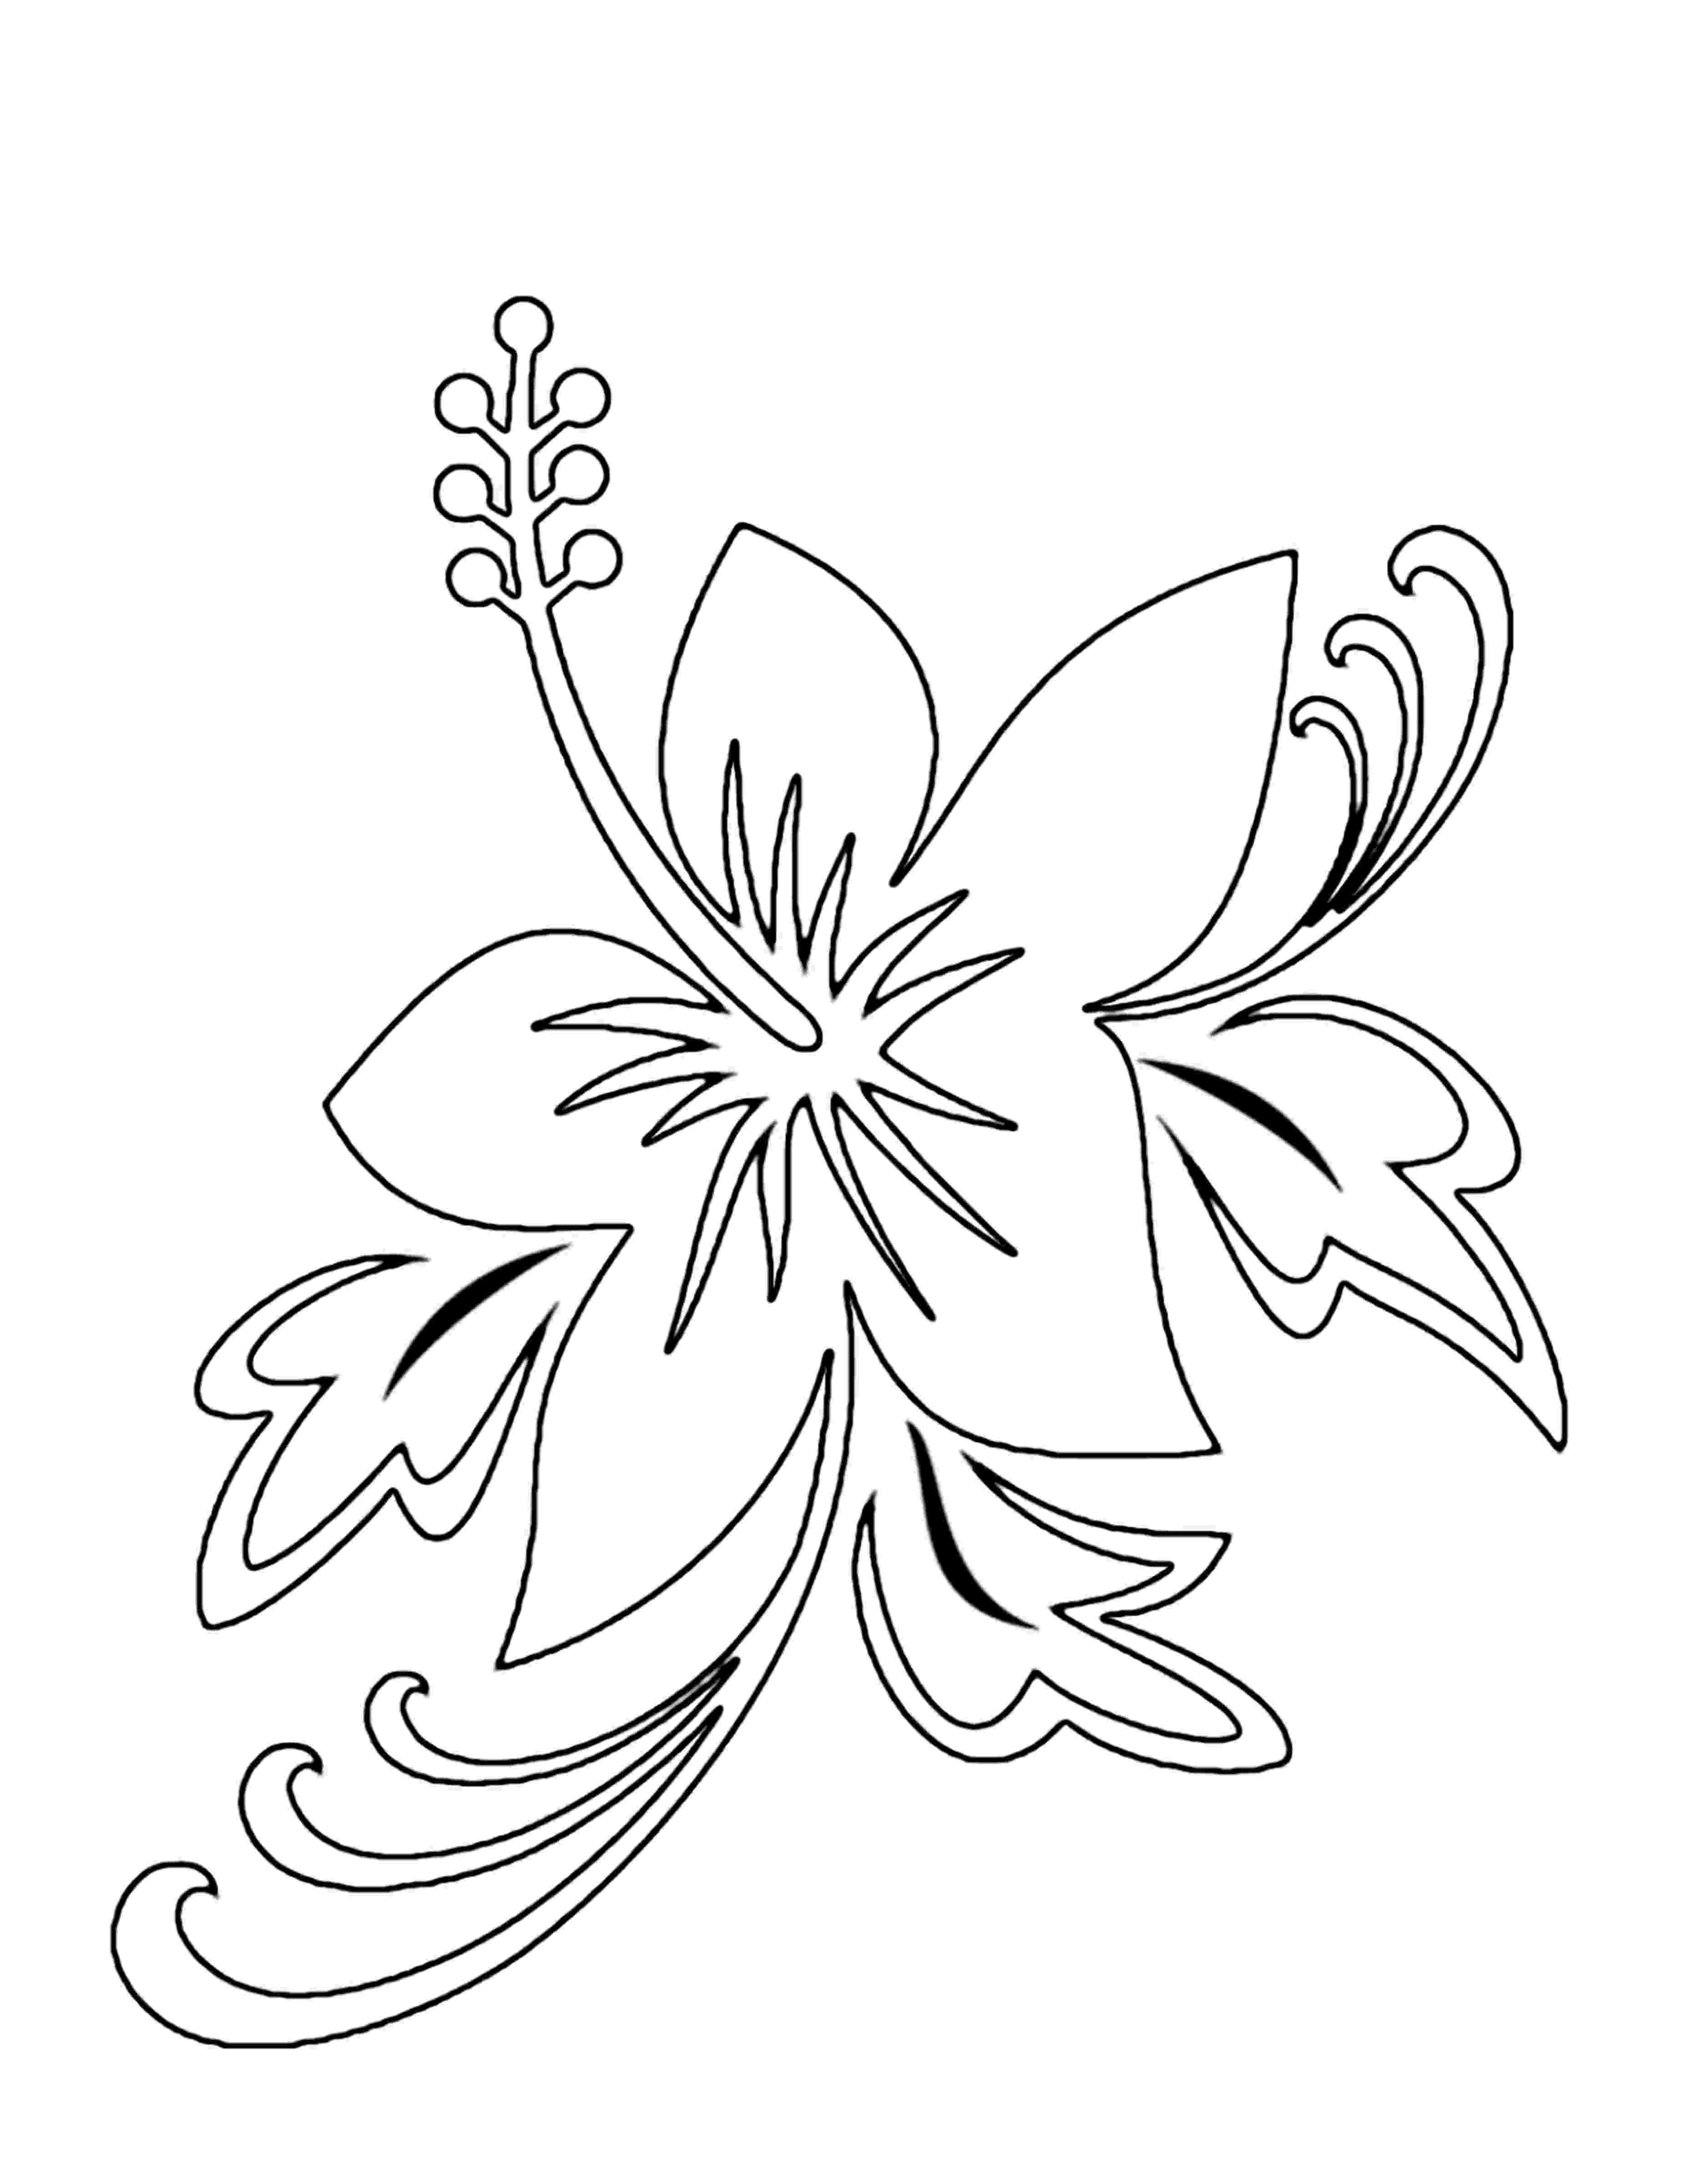 color pictures of flowers free printable flower coloring pages for kids best color pictures flowers of 1 1